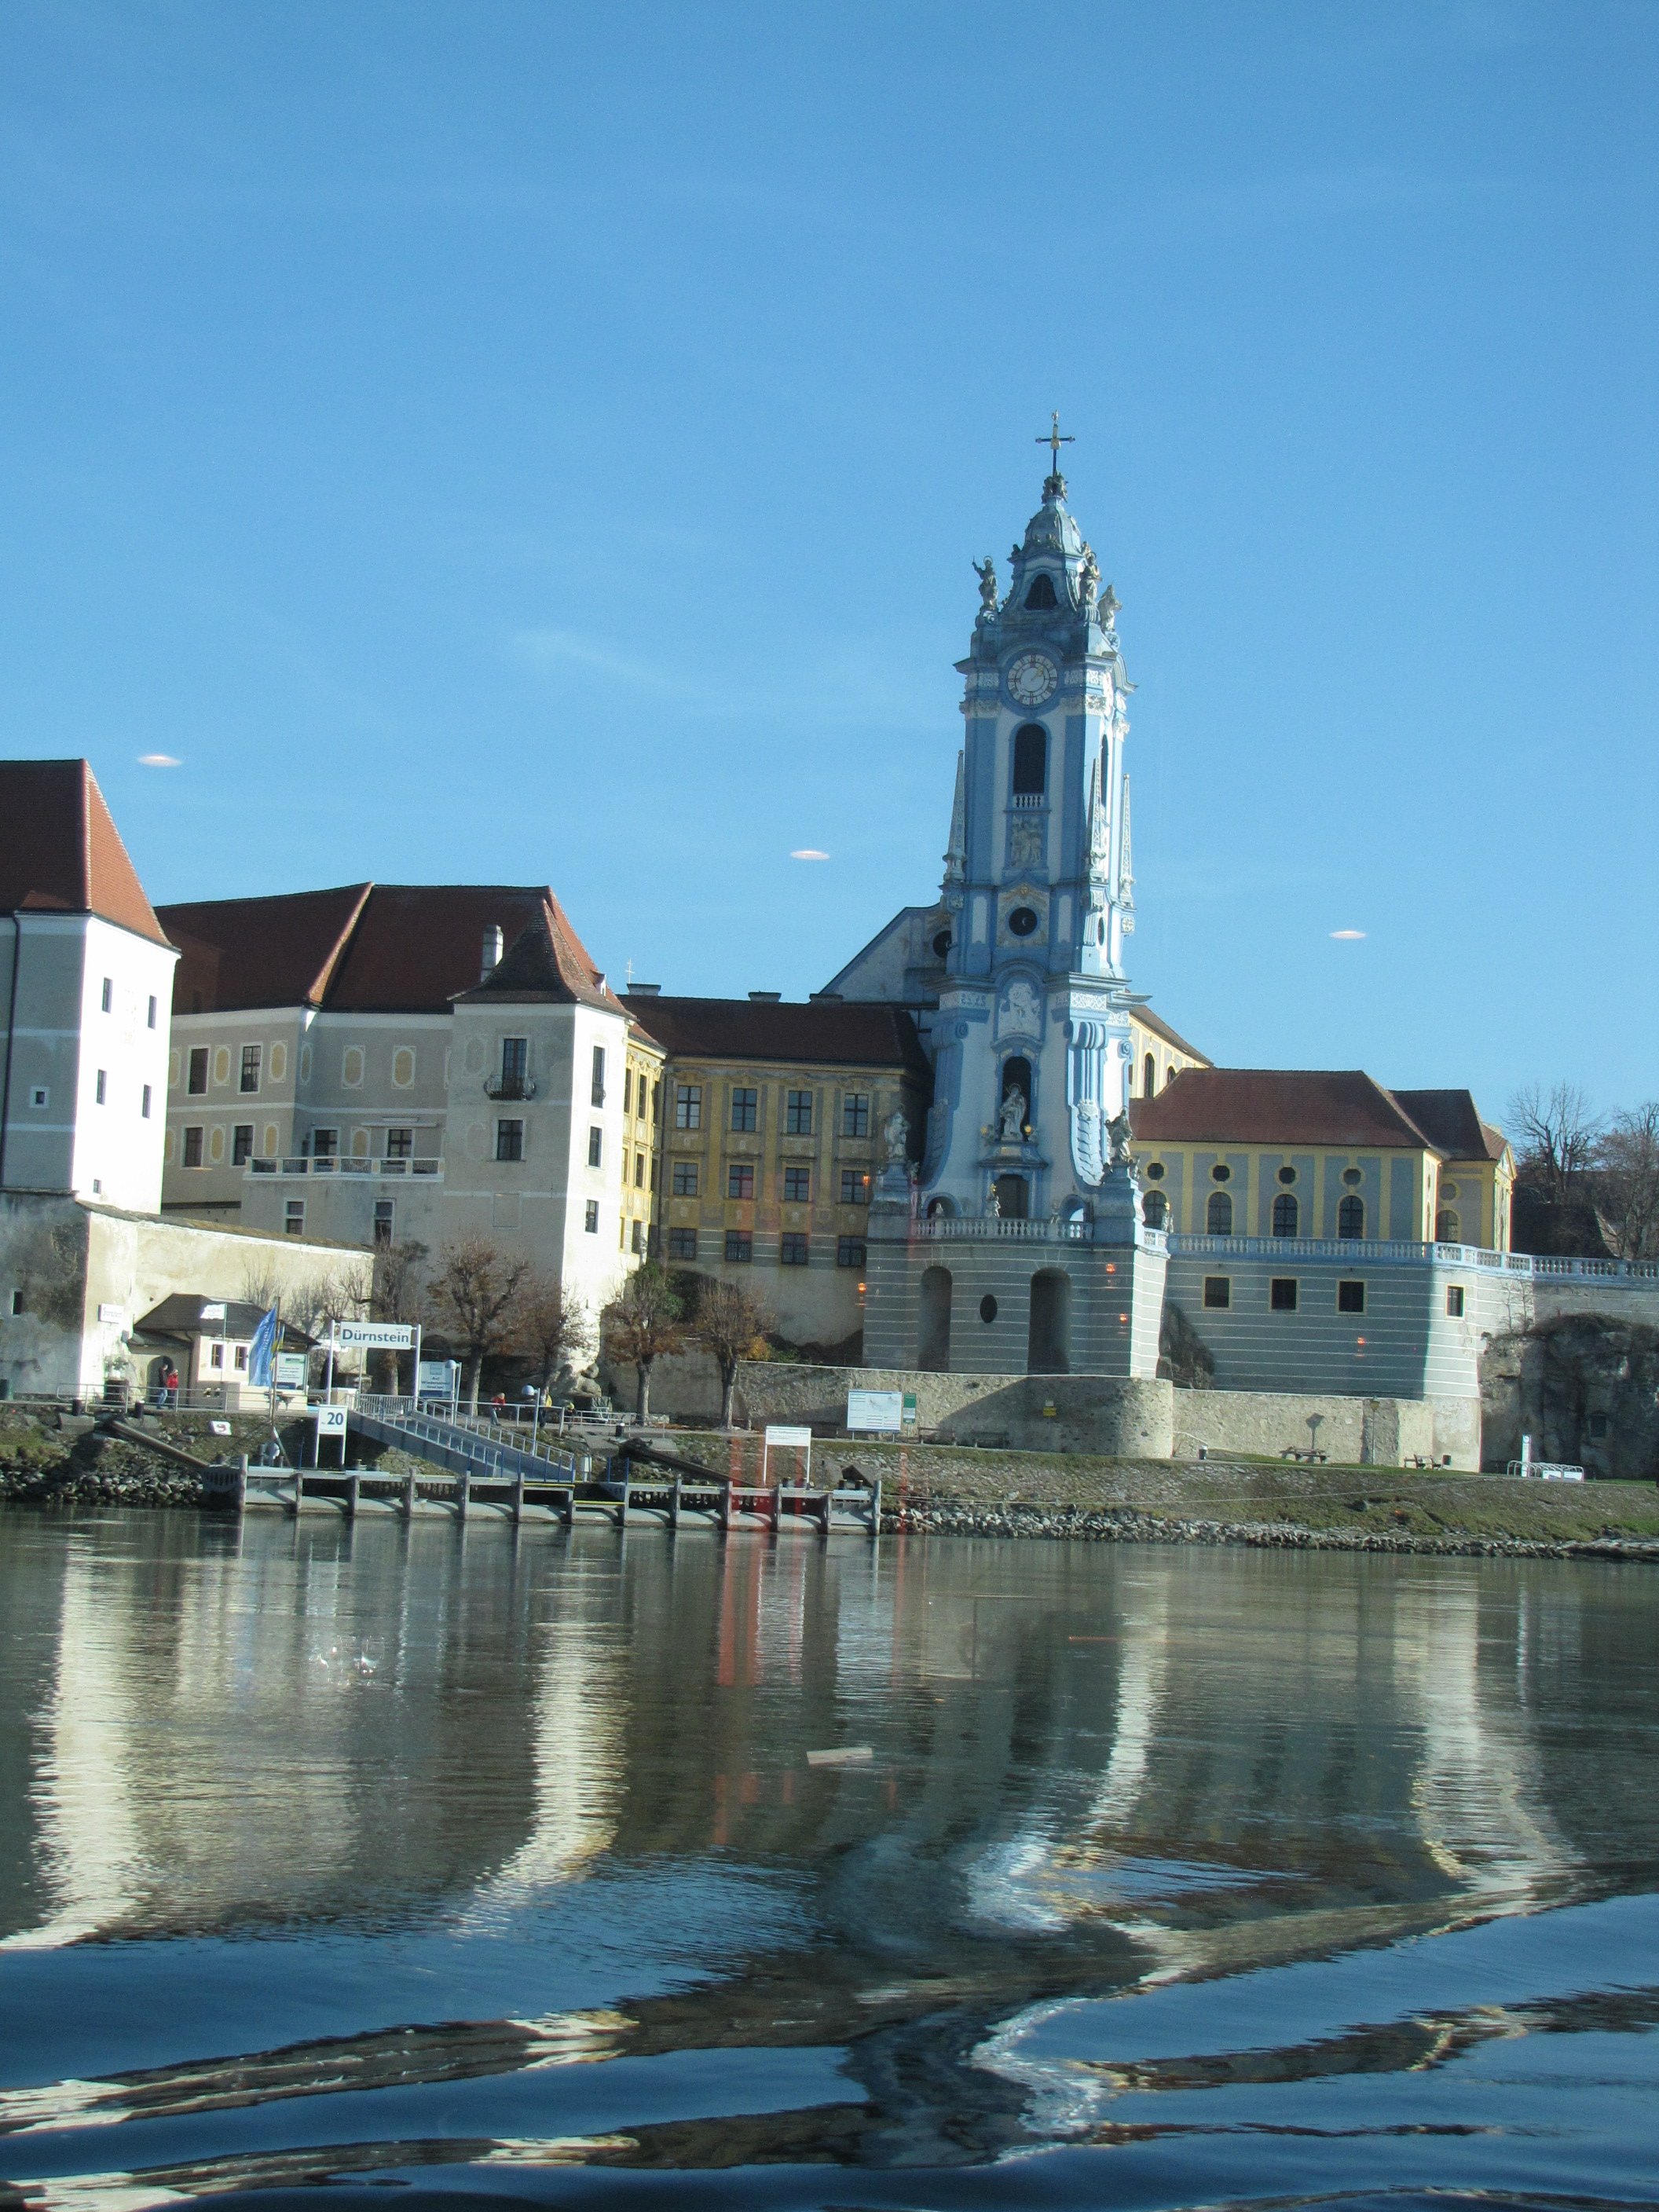 Durnstien—a small village of 600—one reason Europe river cruises are so popular